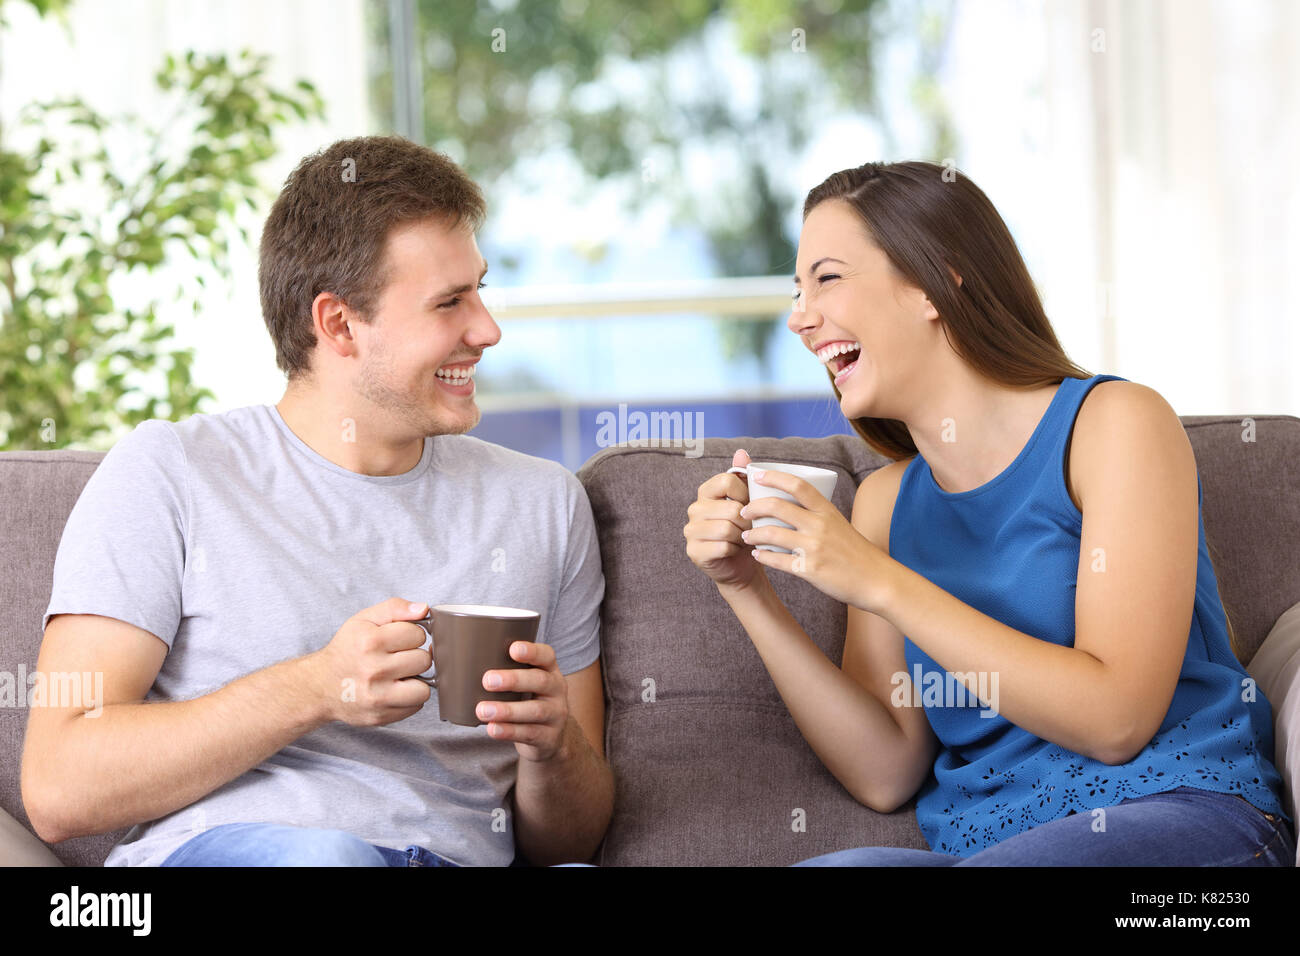 Two people talking and laughing loud sitting on a sofa at home - Stock Image